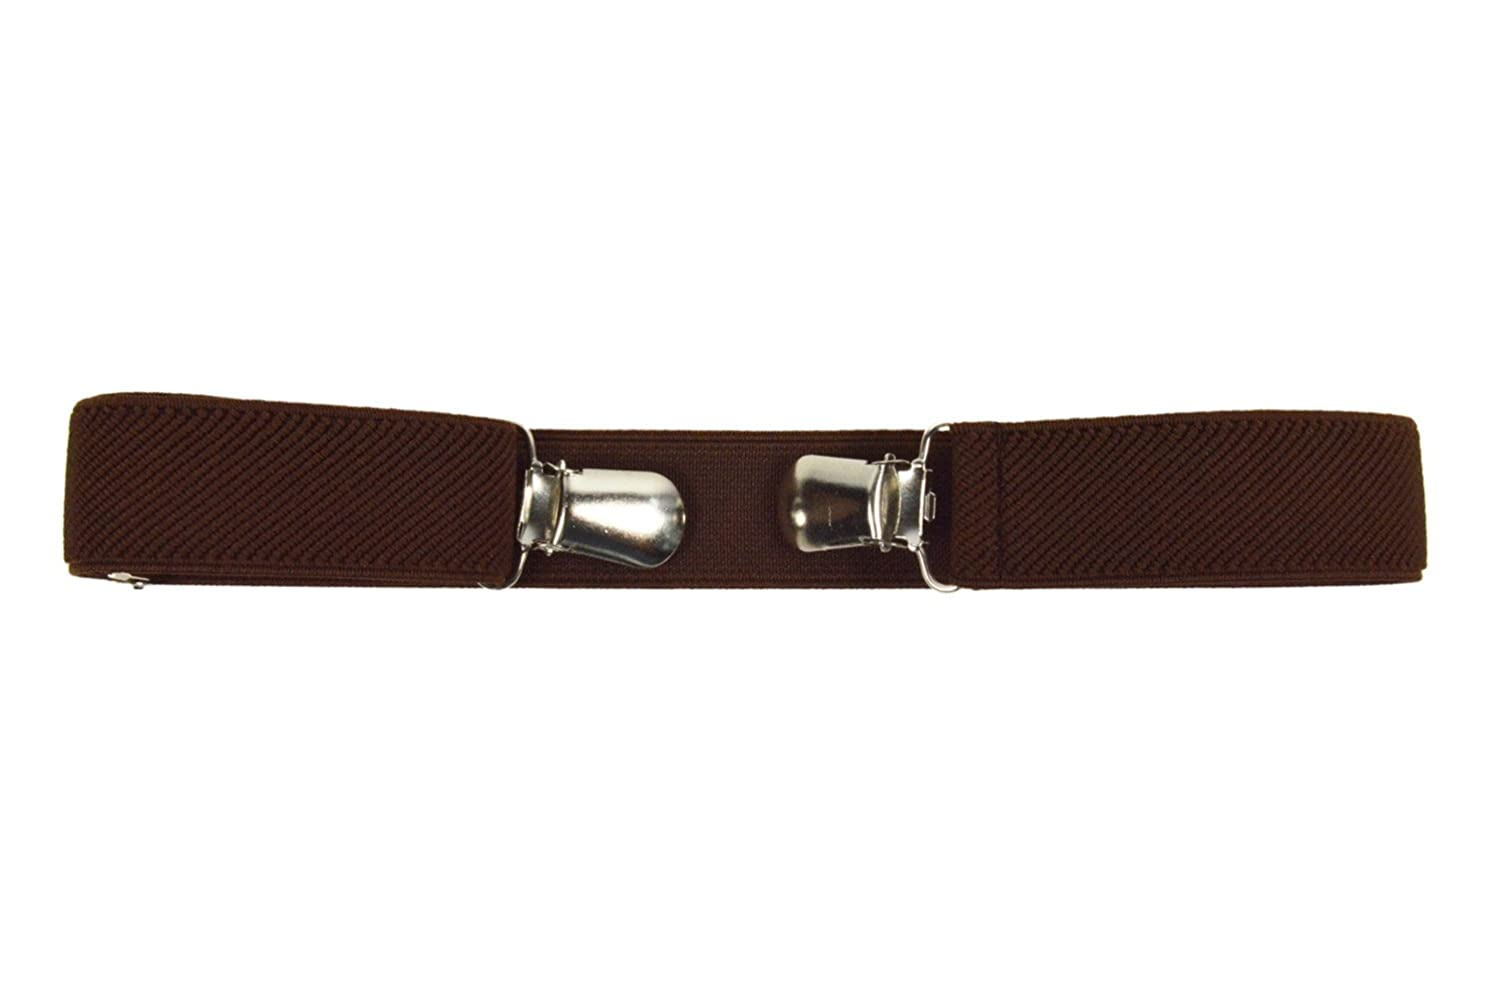 Childrens 1-4 Years Buckle-Free Fully Adjustable Stretch Clip Belt KIDSBELTN-brown